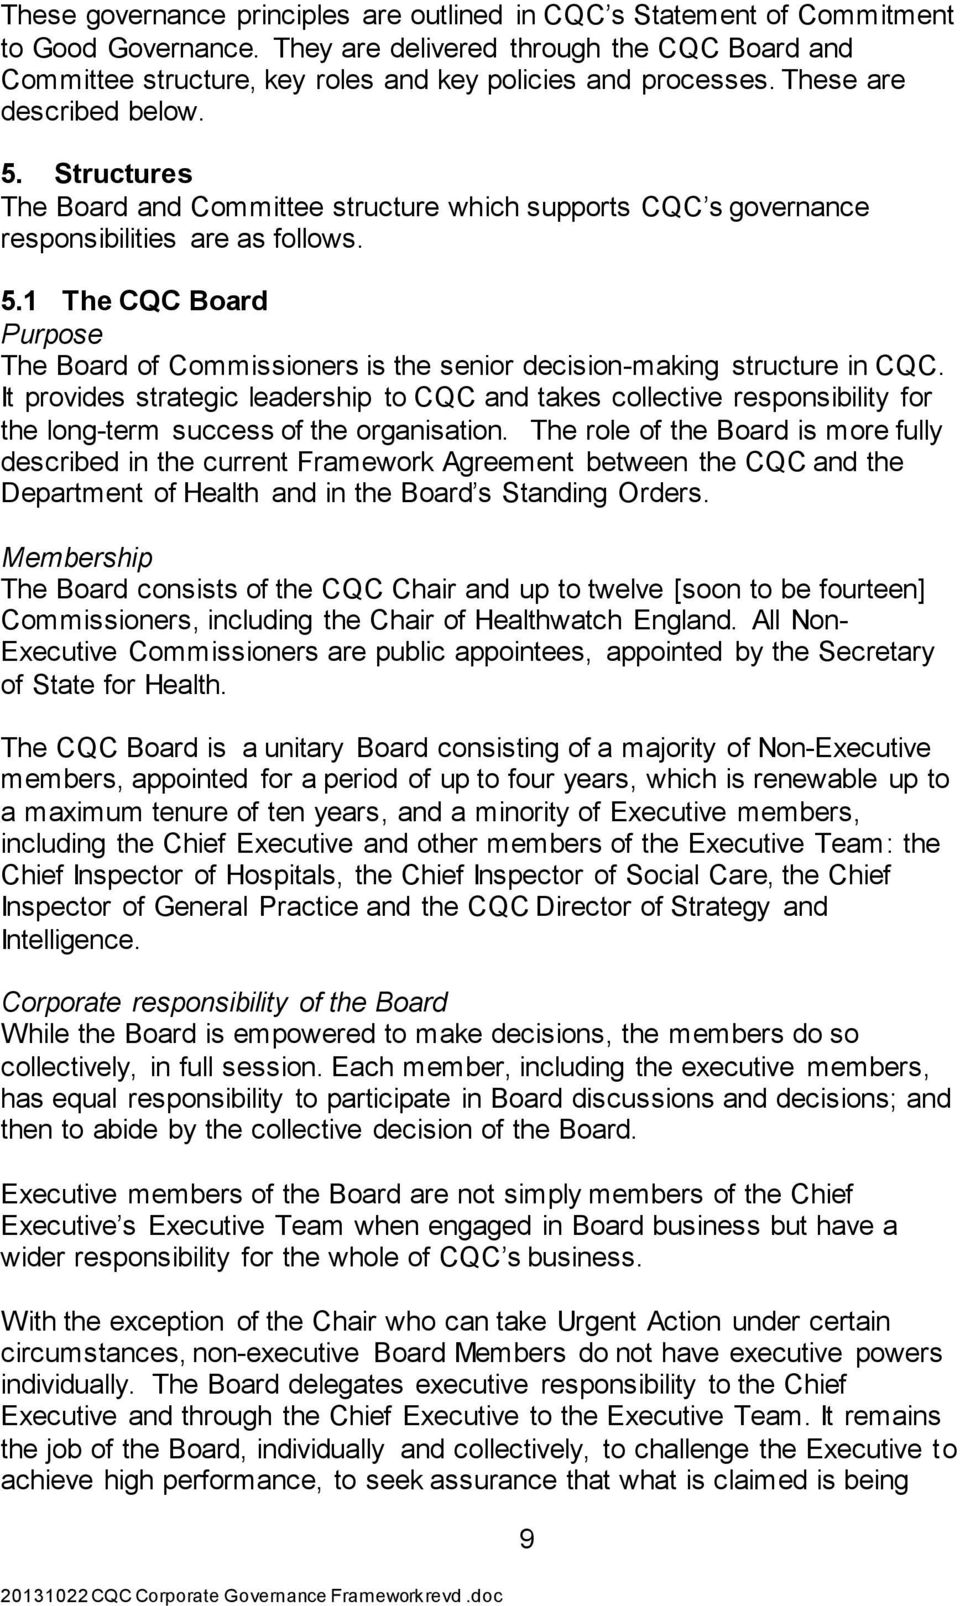 Structures The Board and Committee structure which supports CQC s governance responsibilities are as follows. 5.